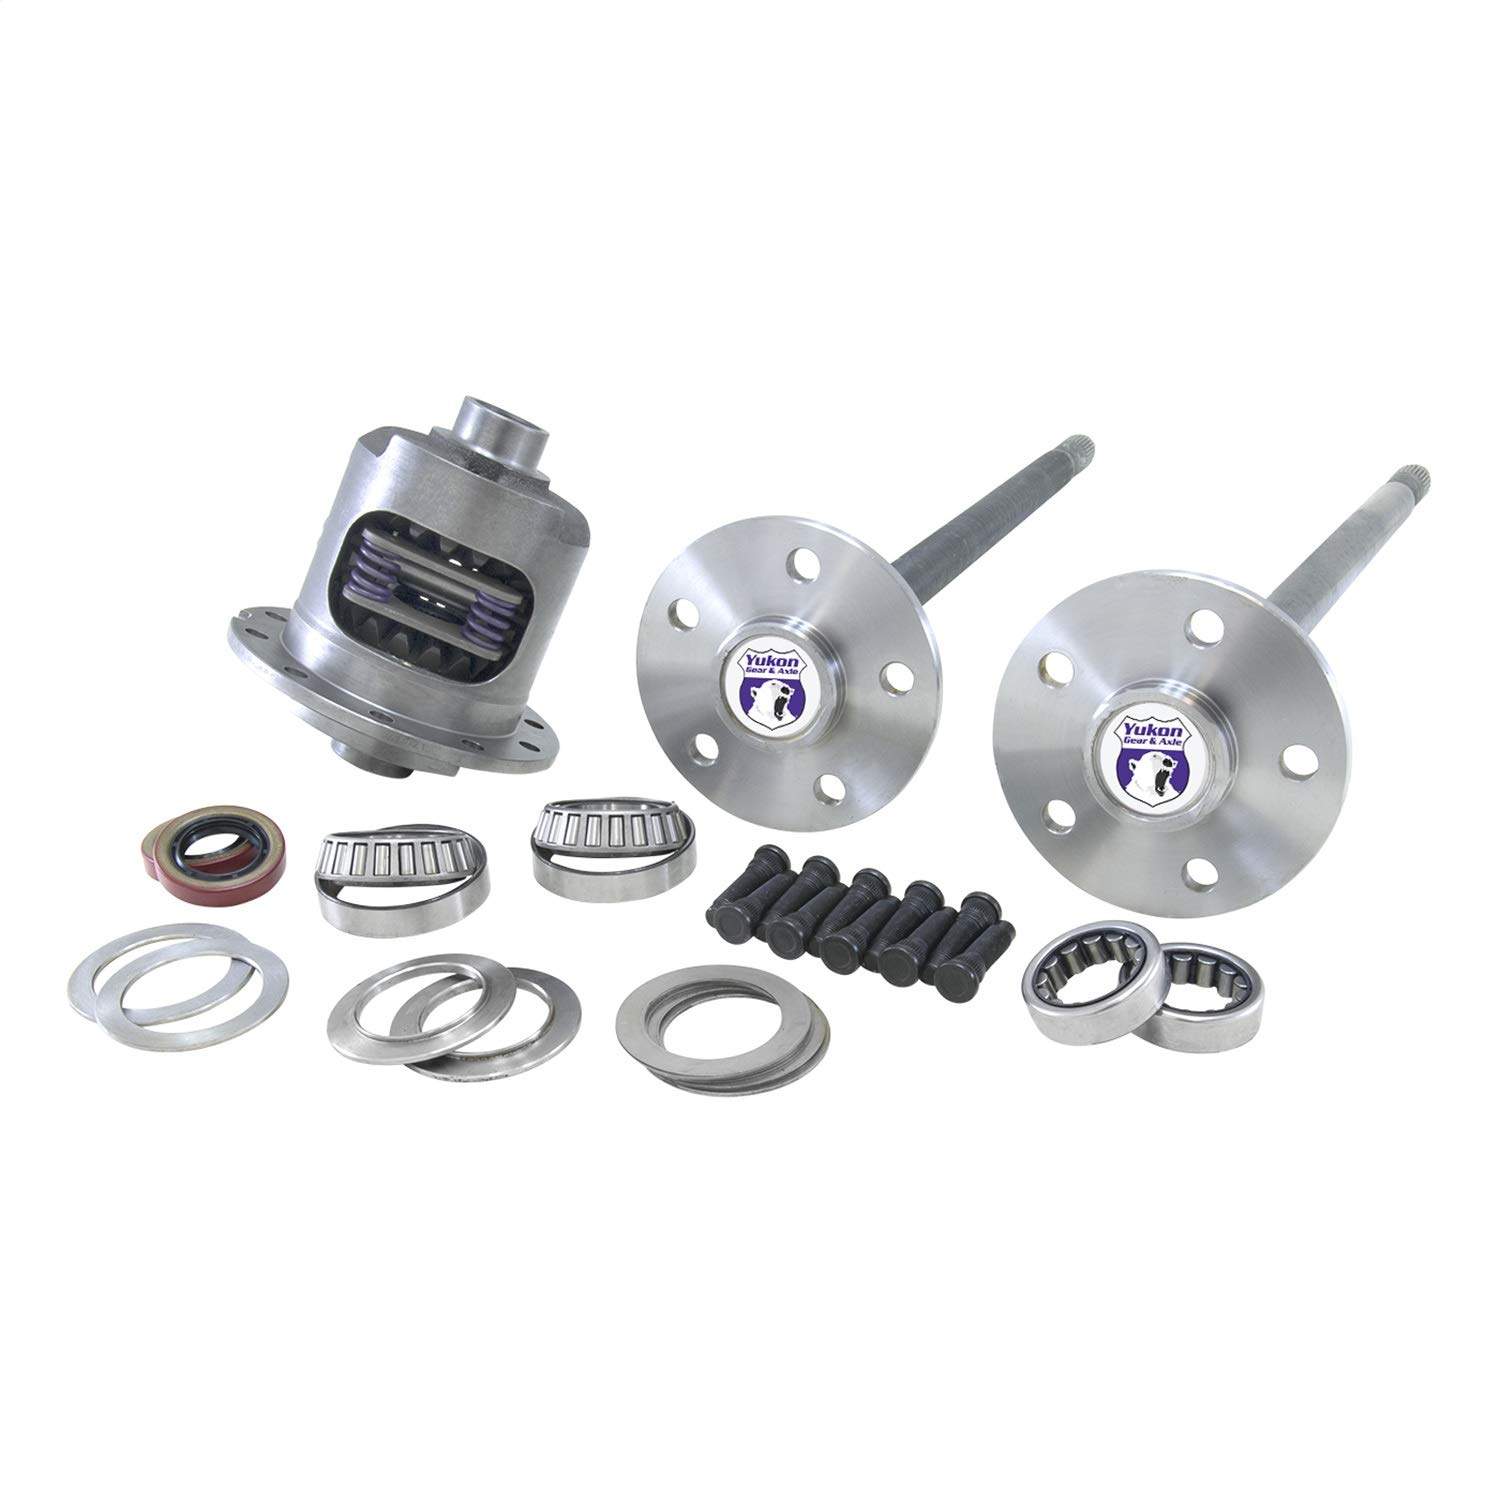 Yukon (YA FMUST-2-31) 5-Lug Axle Kit with DuraGrip Positraction for Ford Mustang 31-Spline Differential